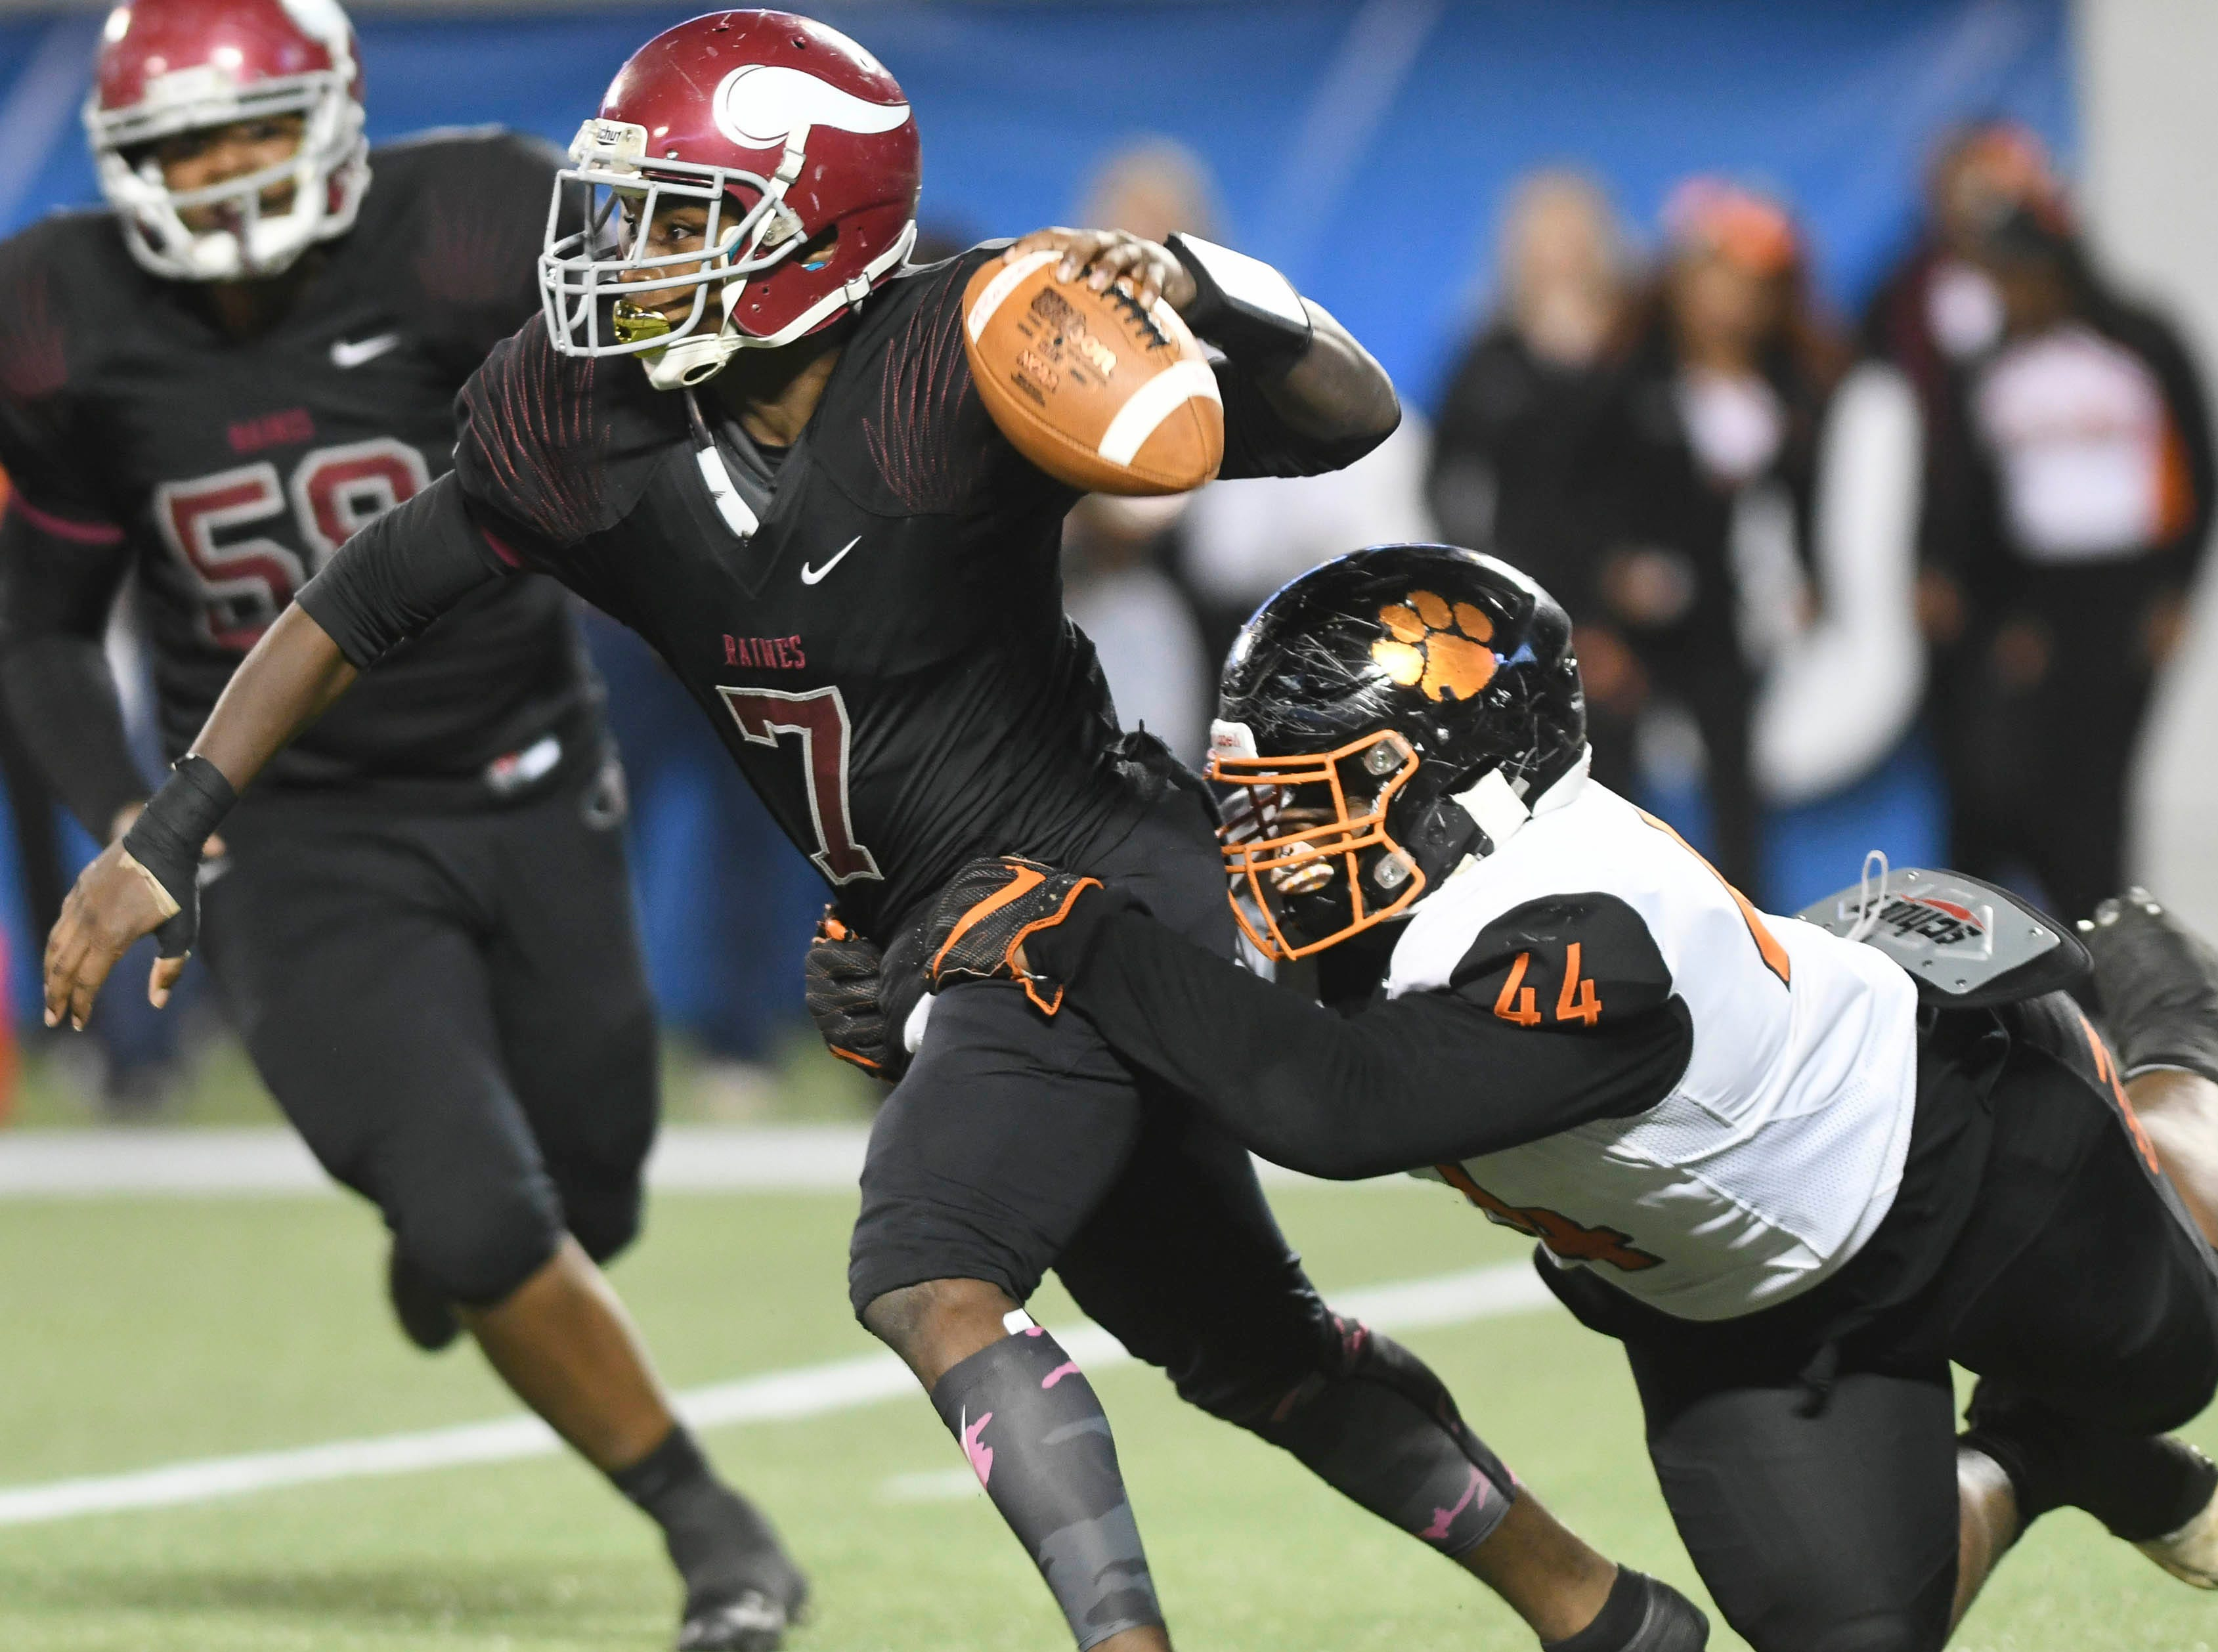 Dajavon White of Cocoa sacks Raines QB Jacorey Rivers during Thursday's Class 4A football state championship.